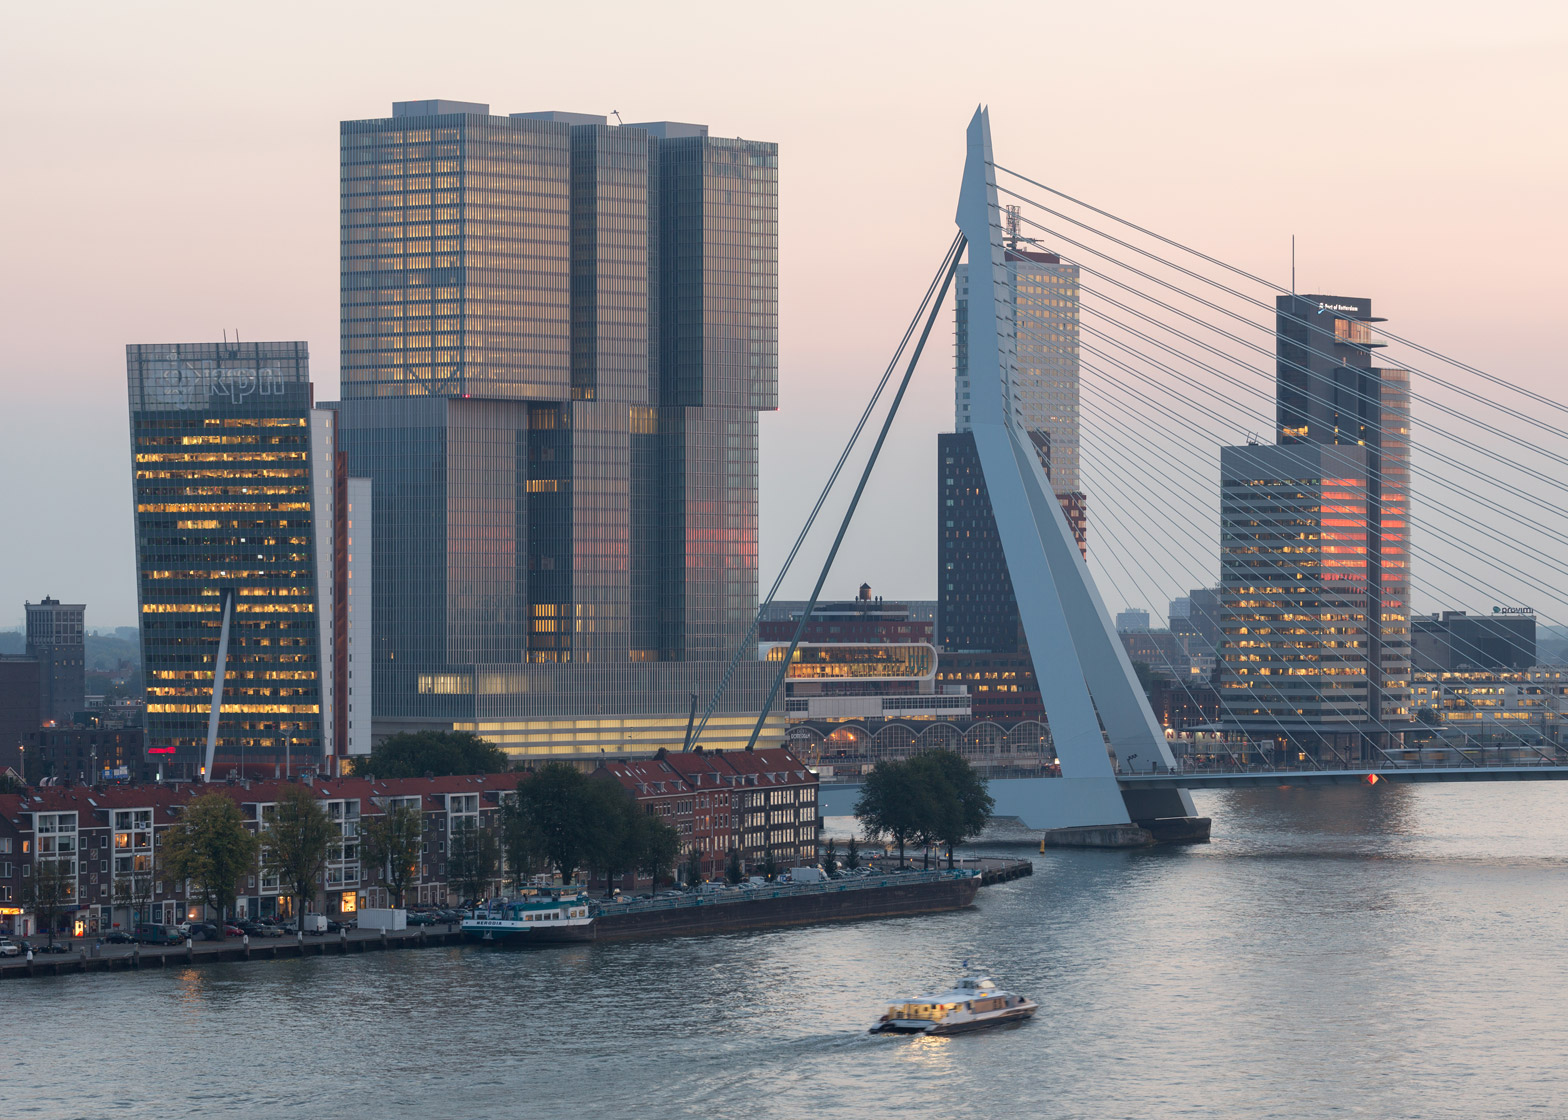 rotterdam is the city of the future say architects